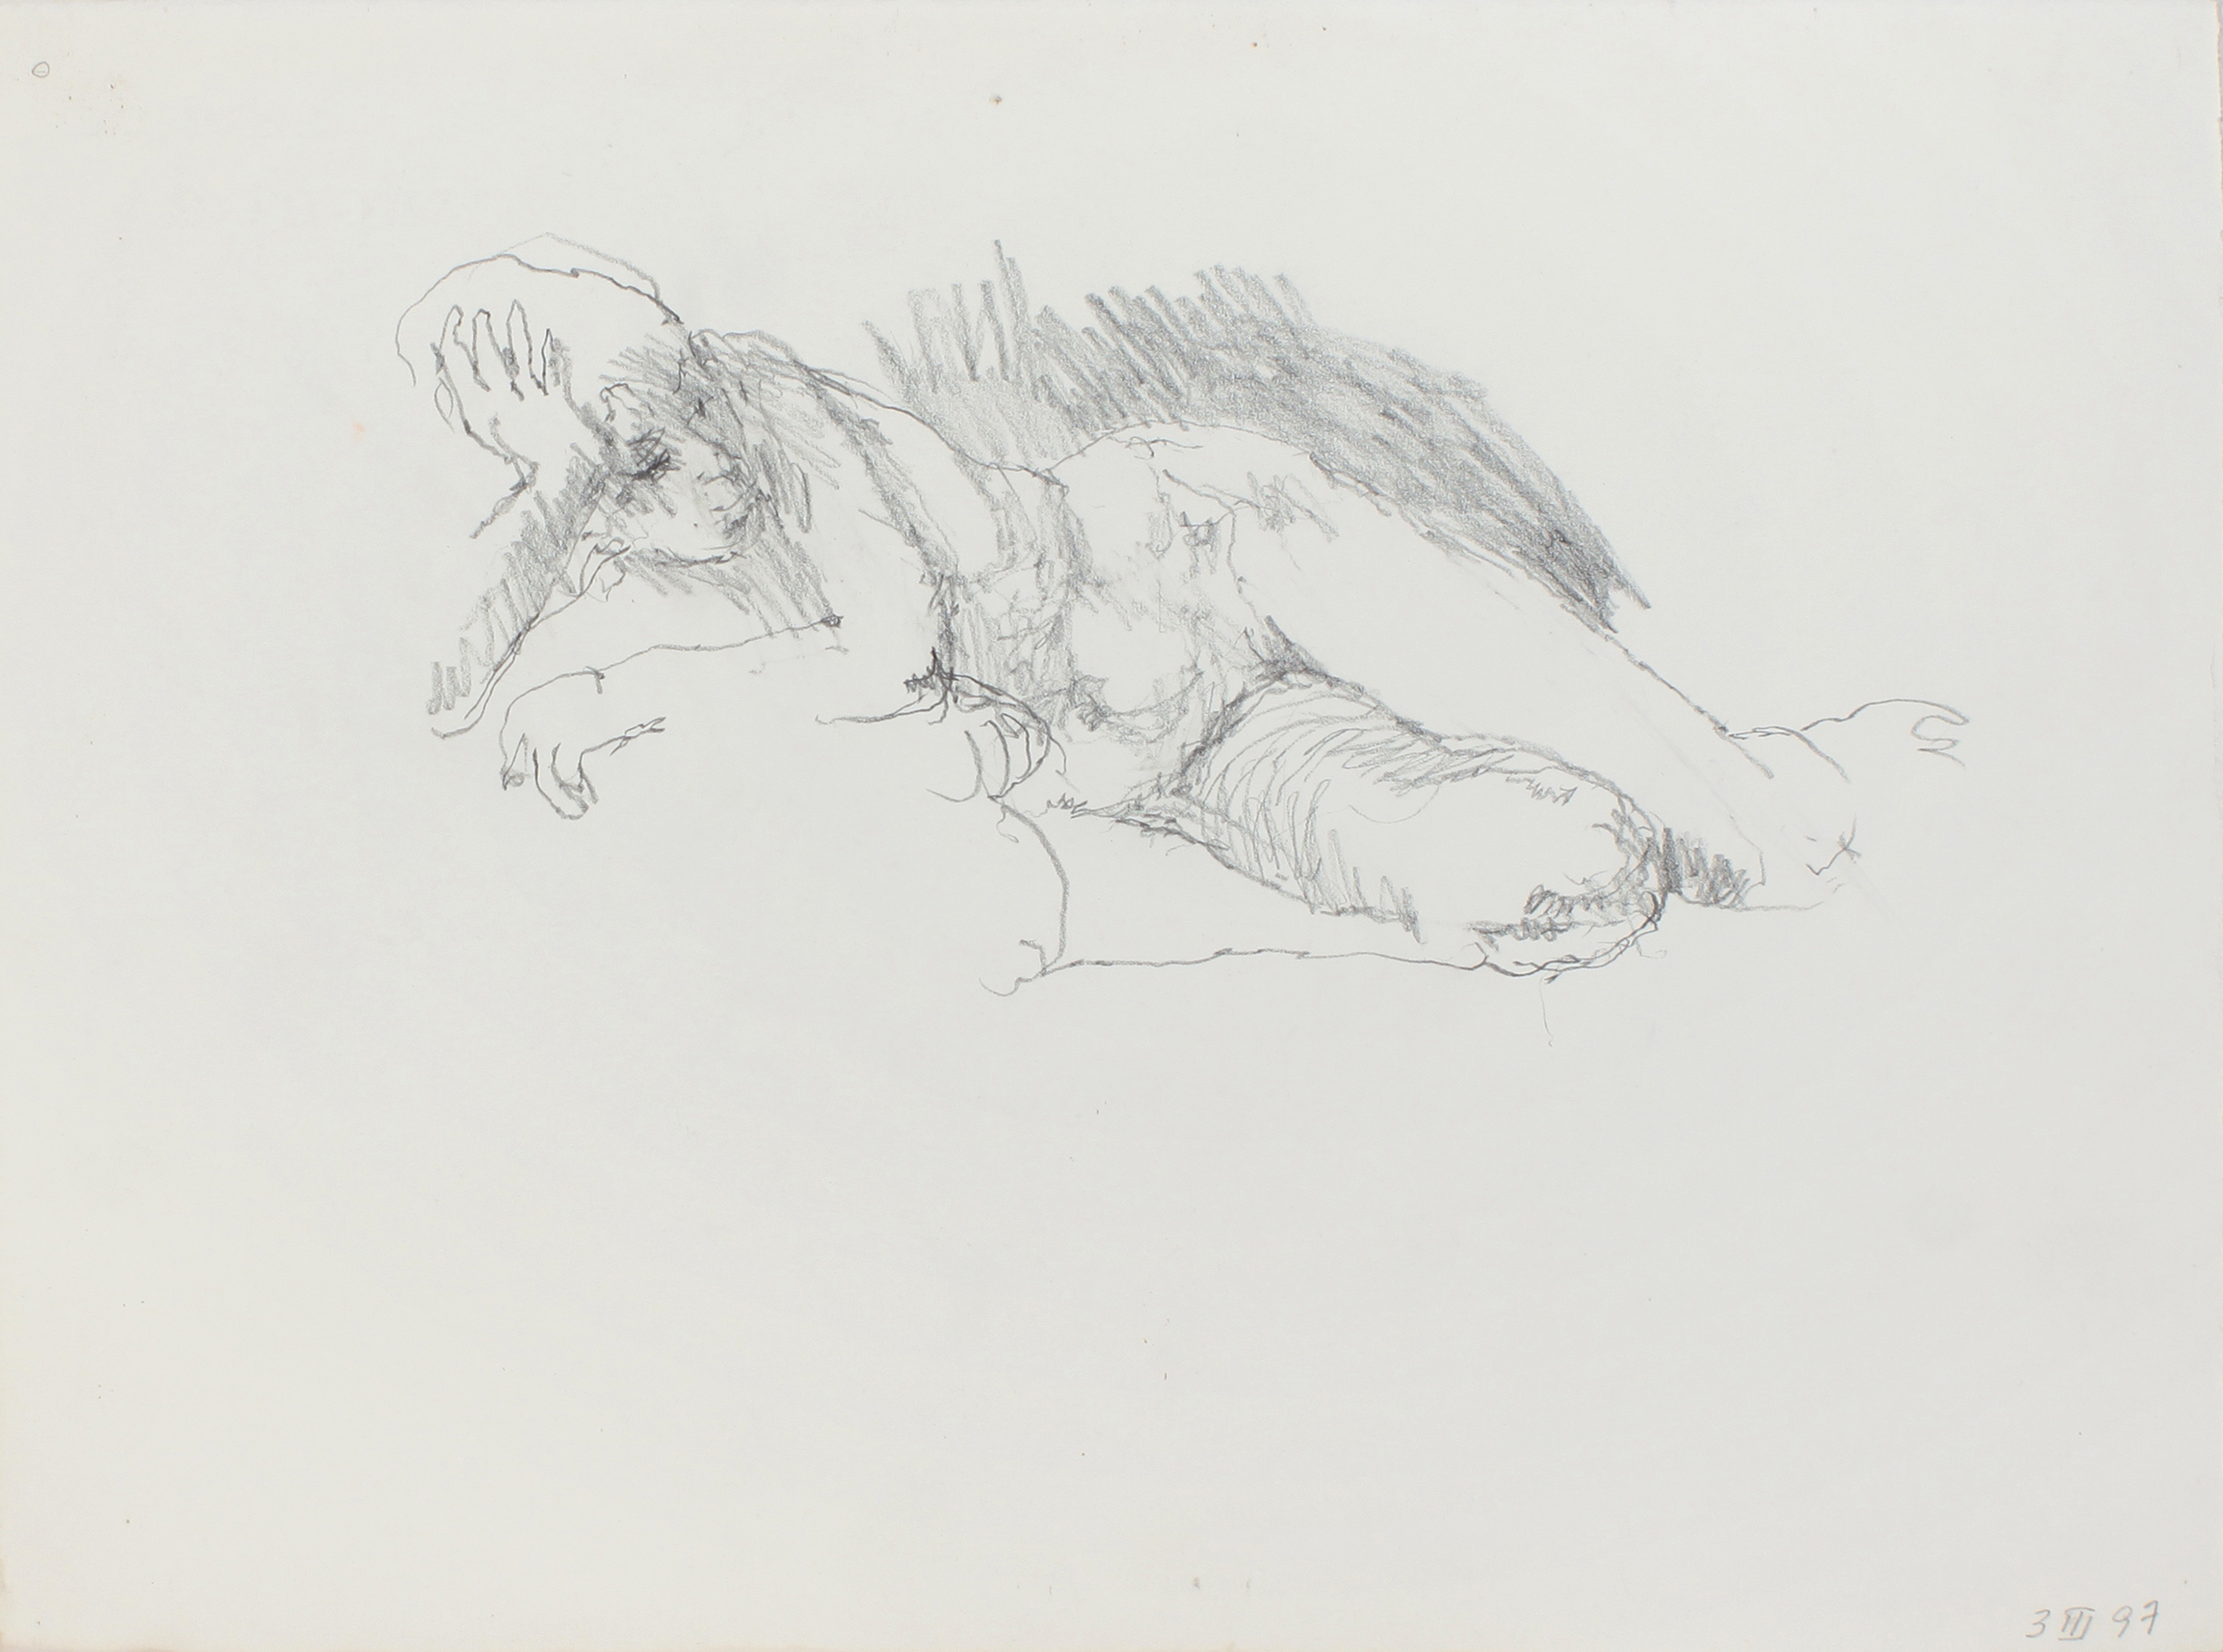 Reclining Nude with Hand on head and Bent Legs